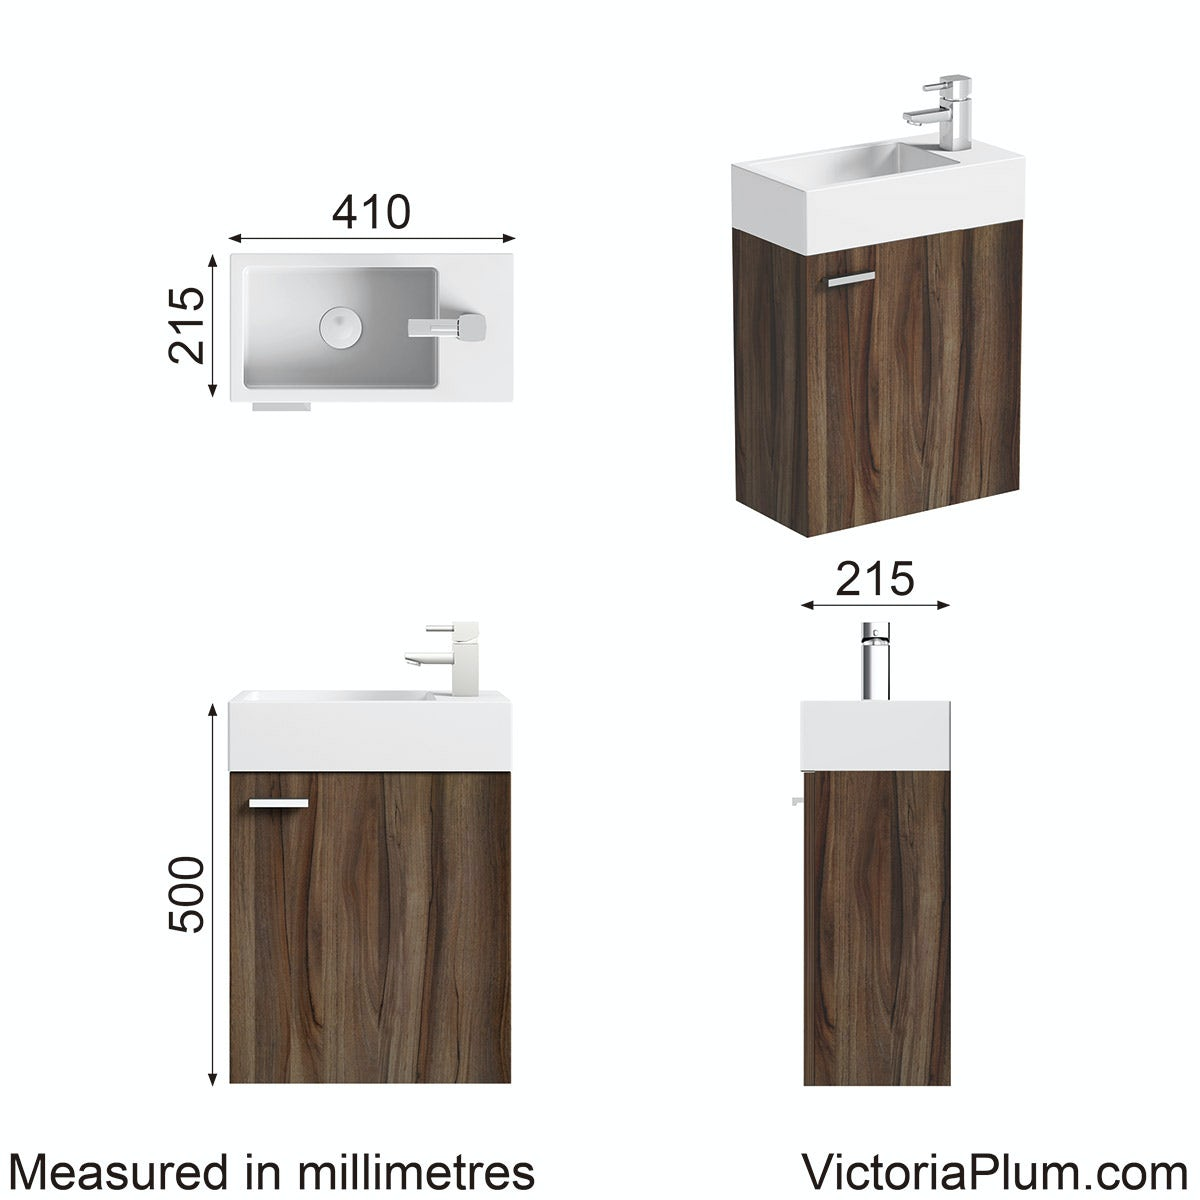 Dimensions for Clarity Compact walnut cloakroom wall hung unit with resin basin 410mm